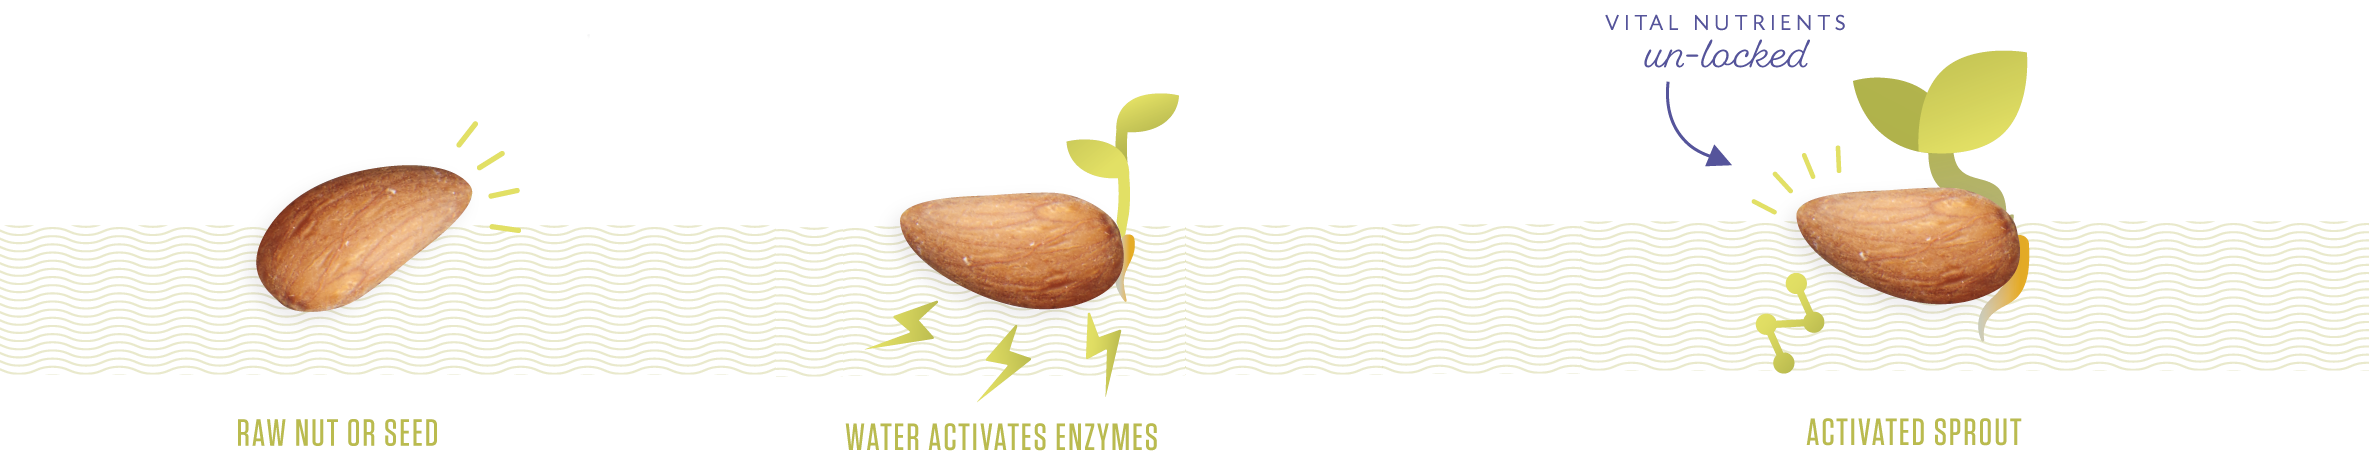 Learn living intentions what. Nut clipart raw